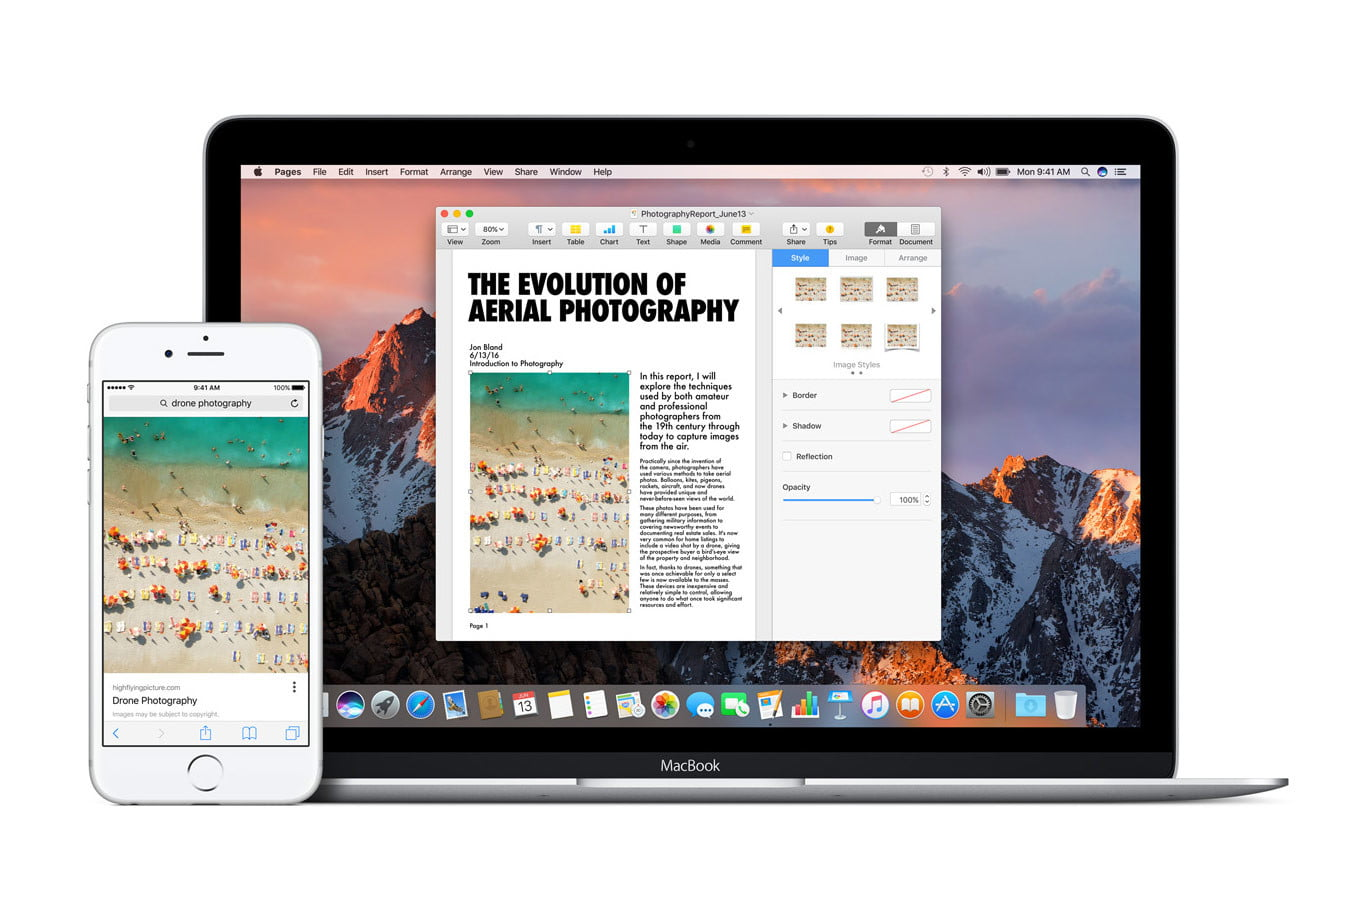 os x name change to macos and first version macossierra 0014